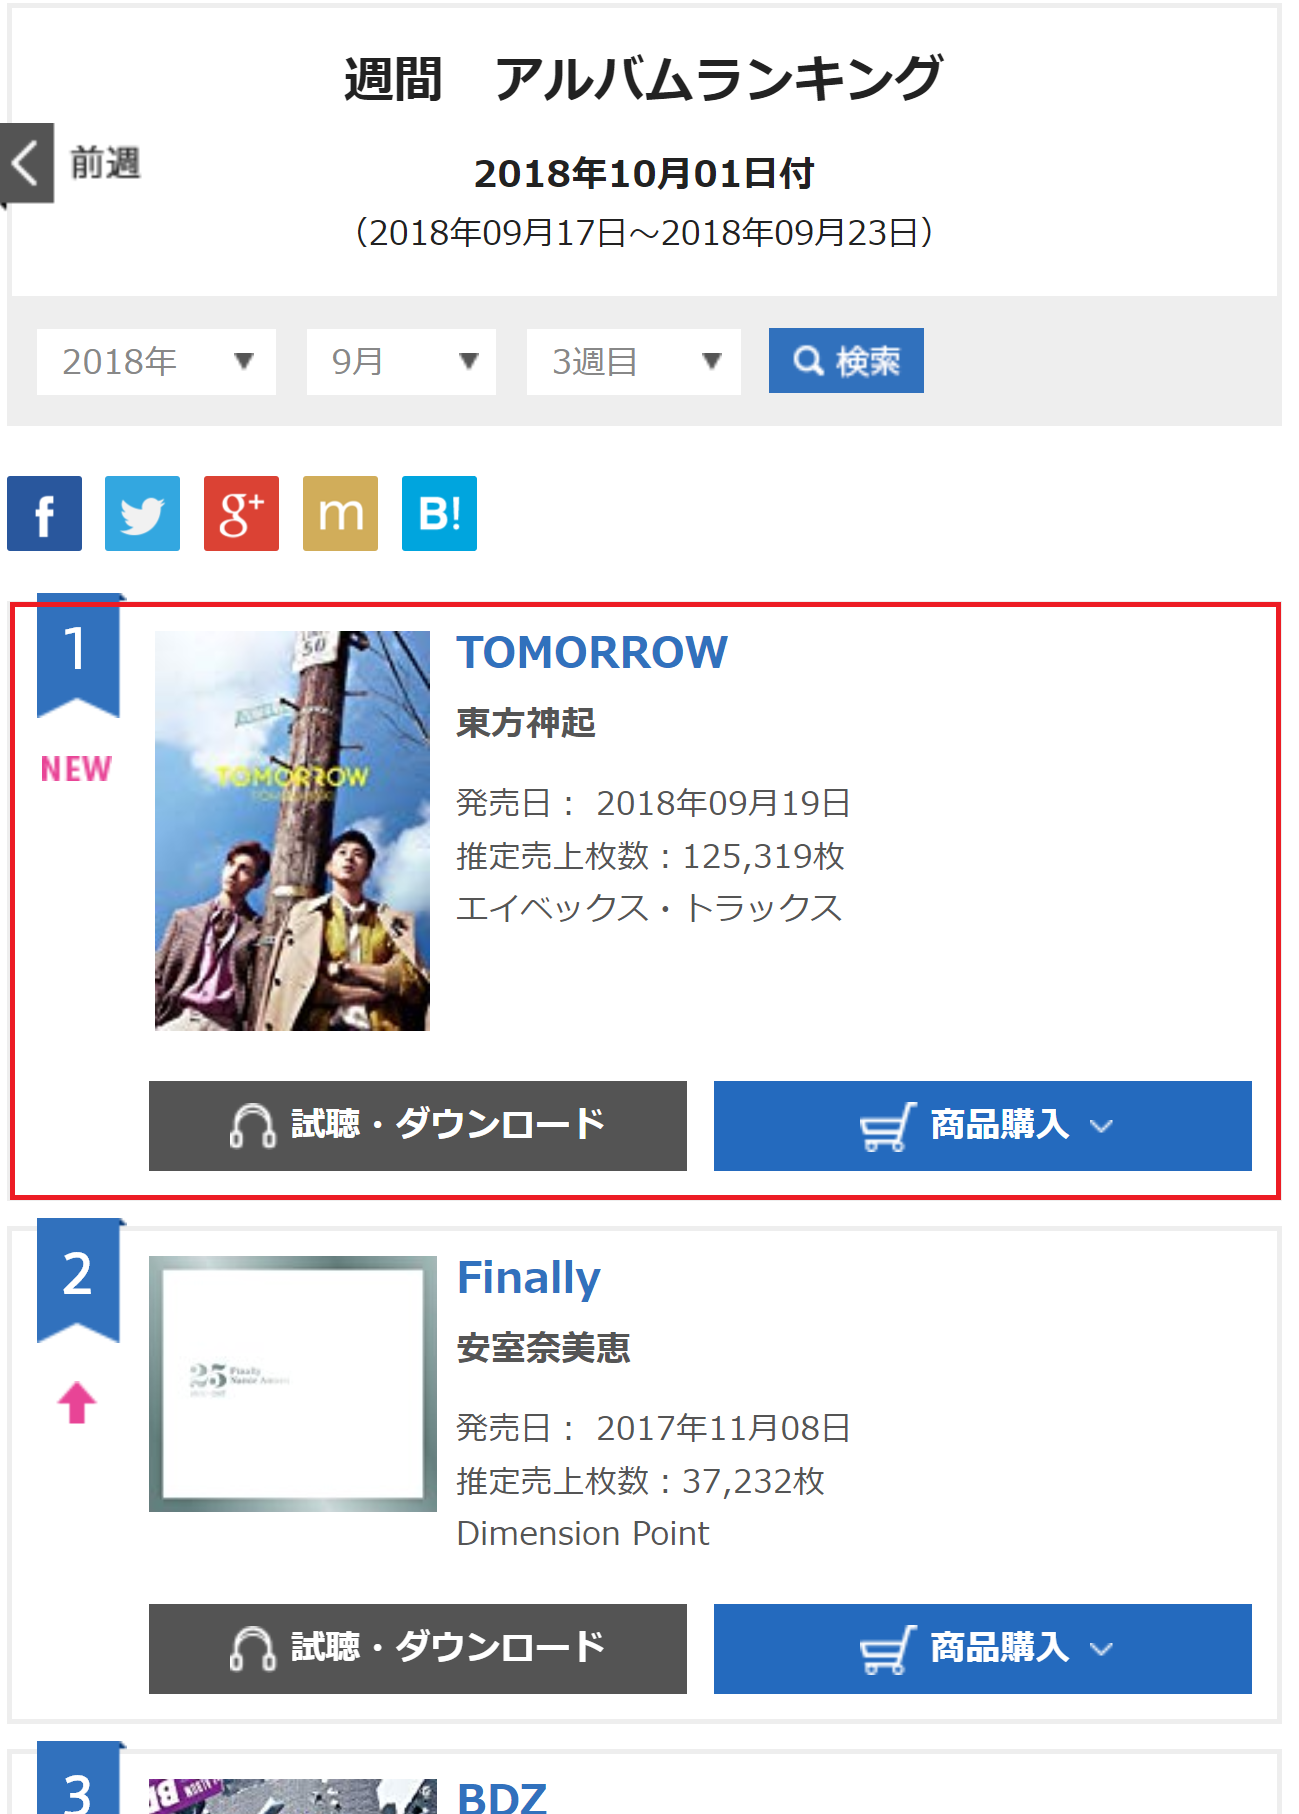 INFO] 180926 Oricon Weekly Album for 10/1 (180917-23): No 1